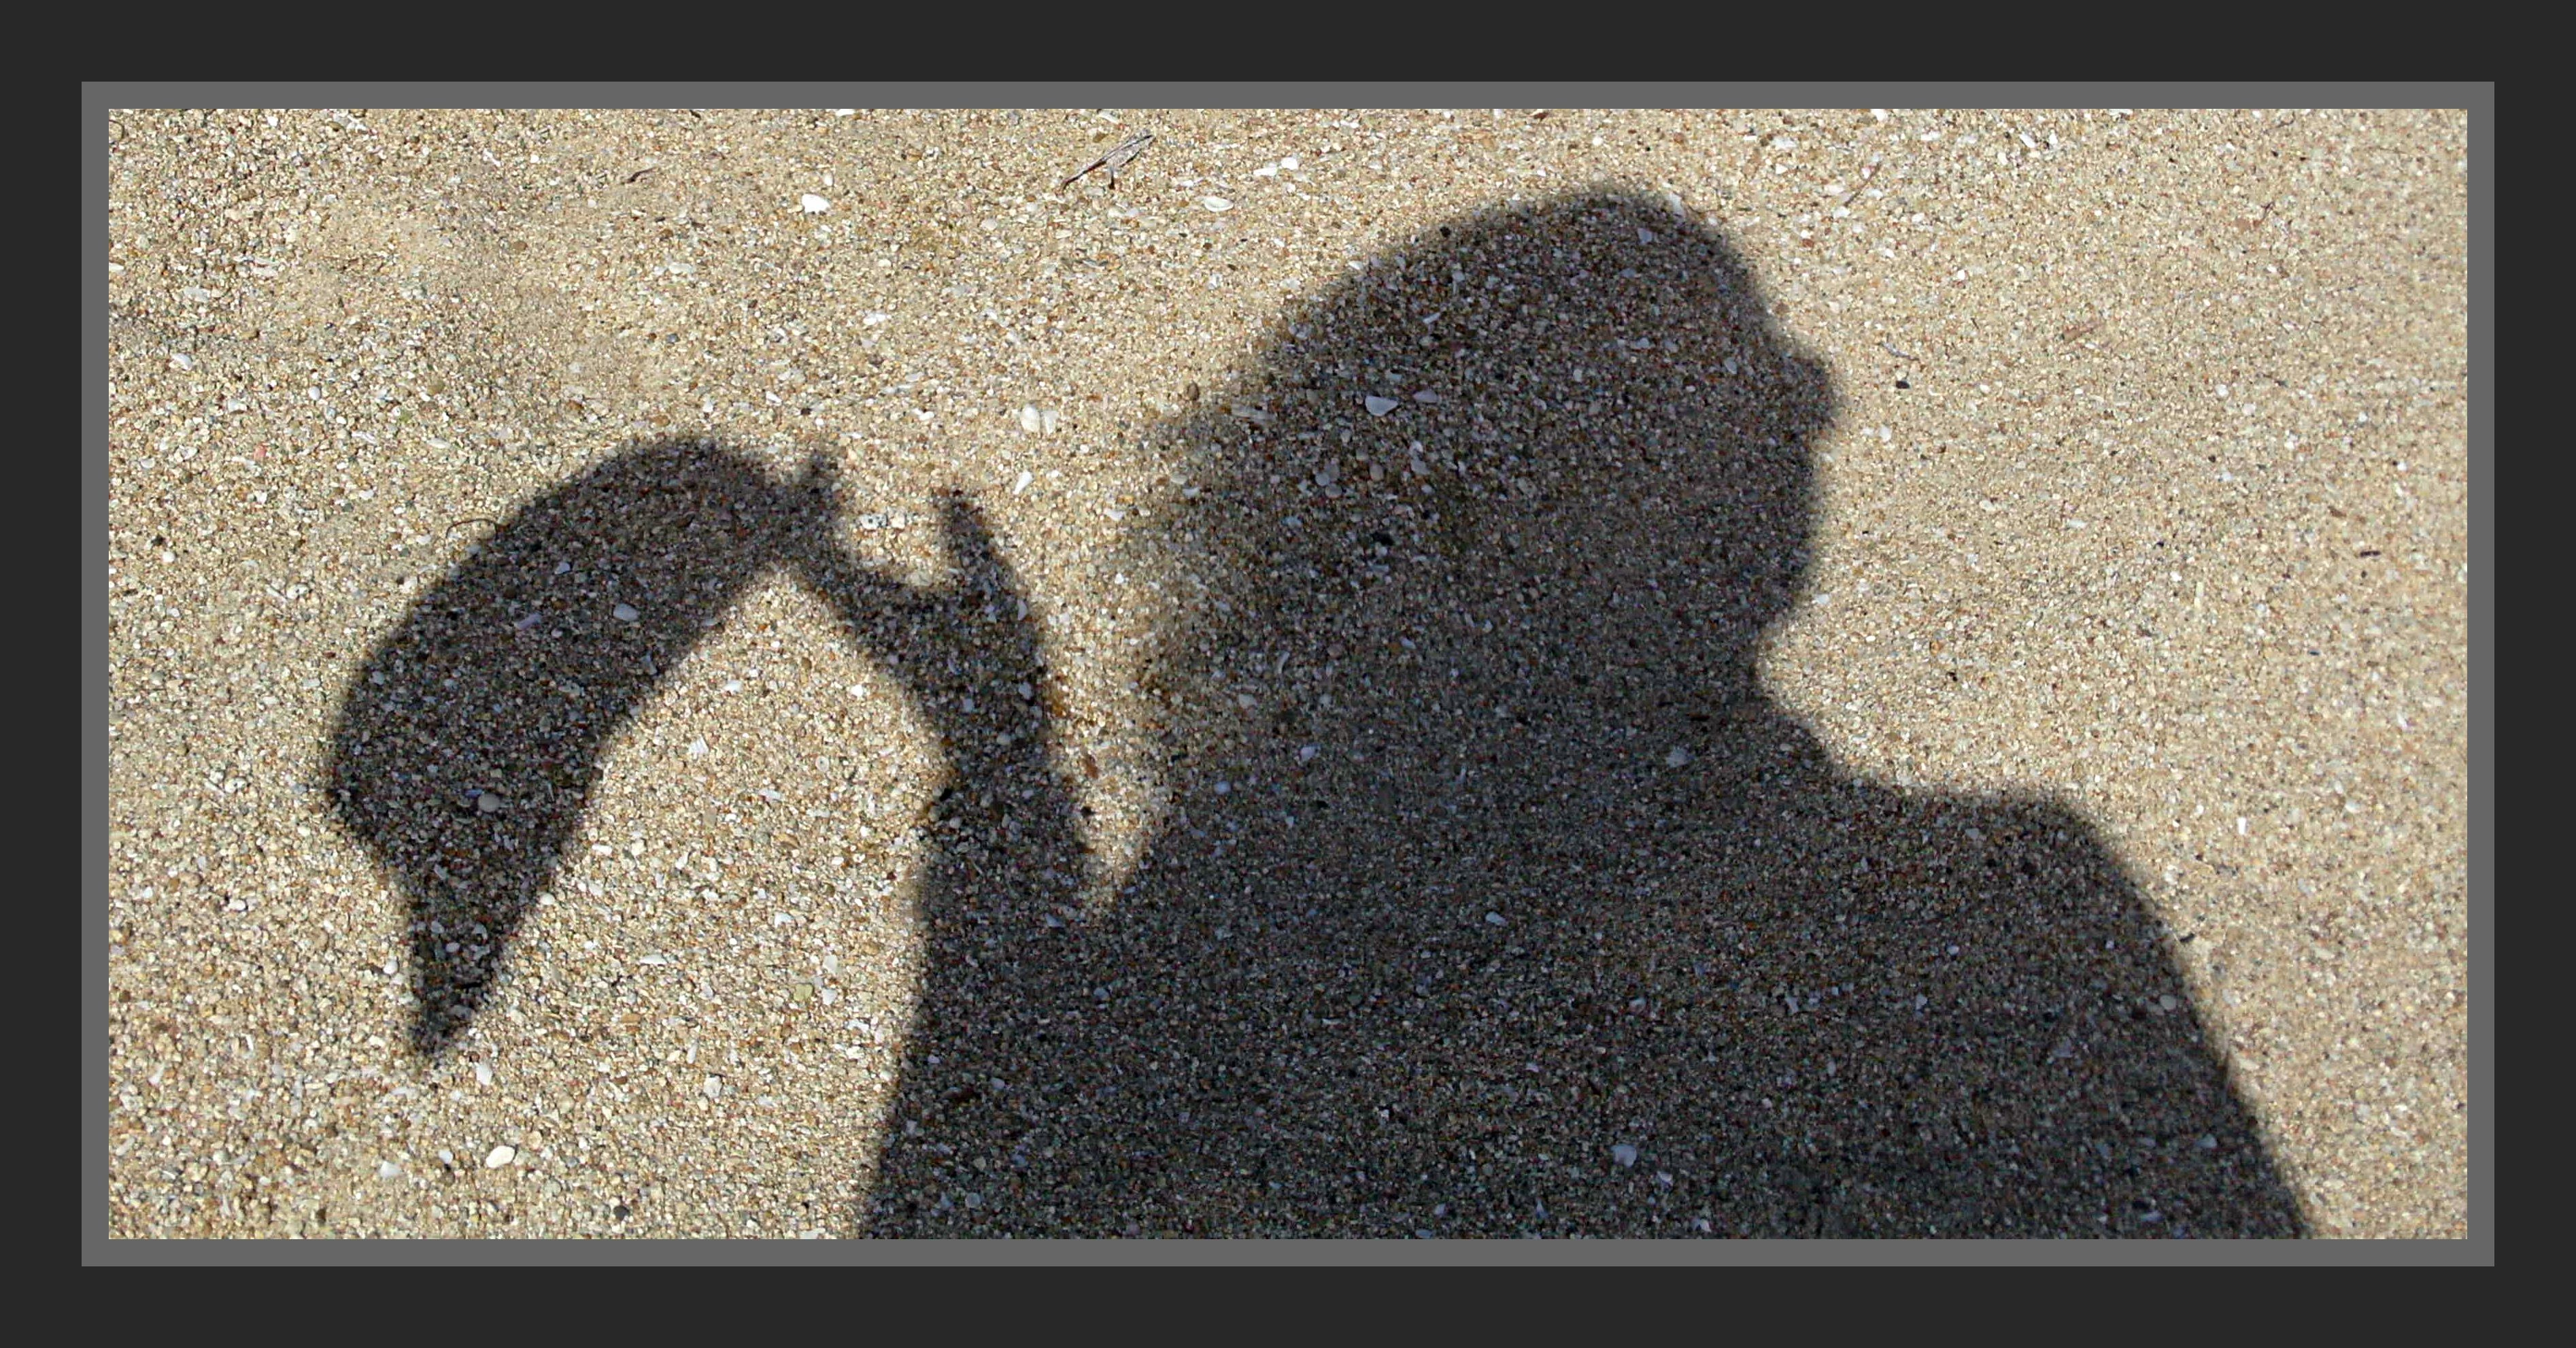 I did this photo of my shadow on the beach. You should try it when at the beach.